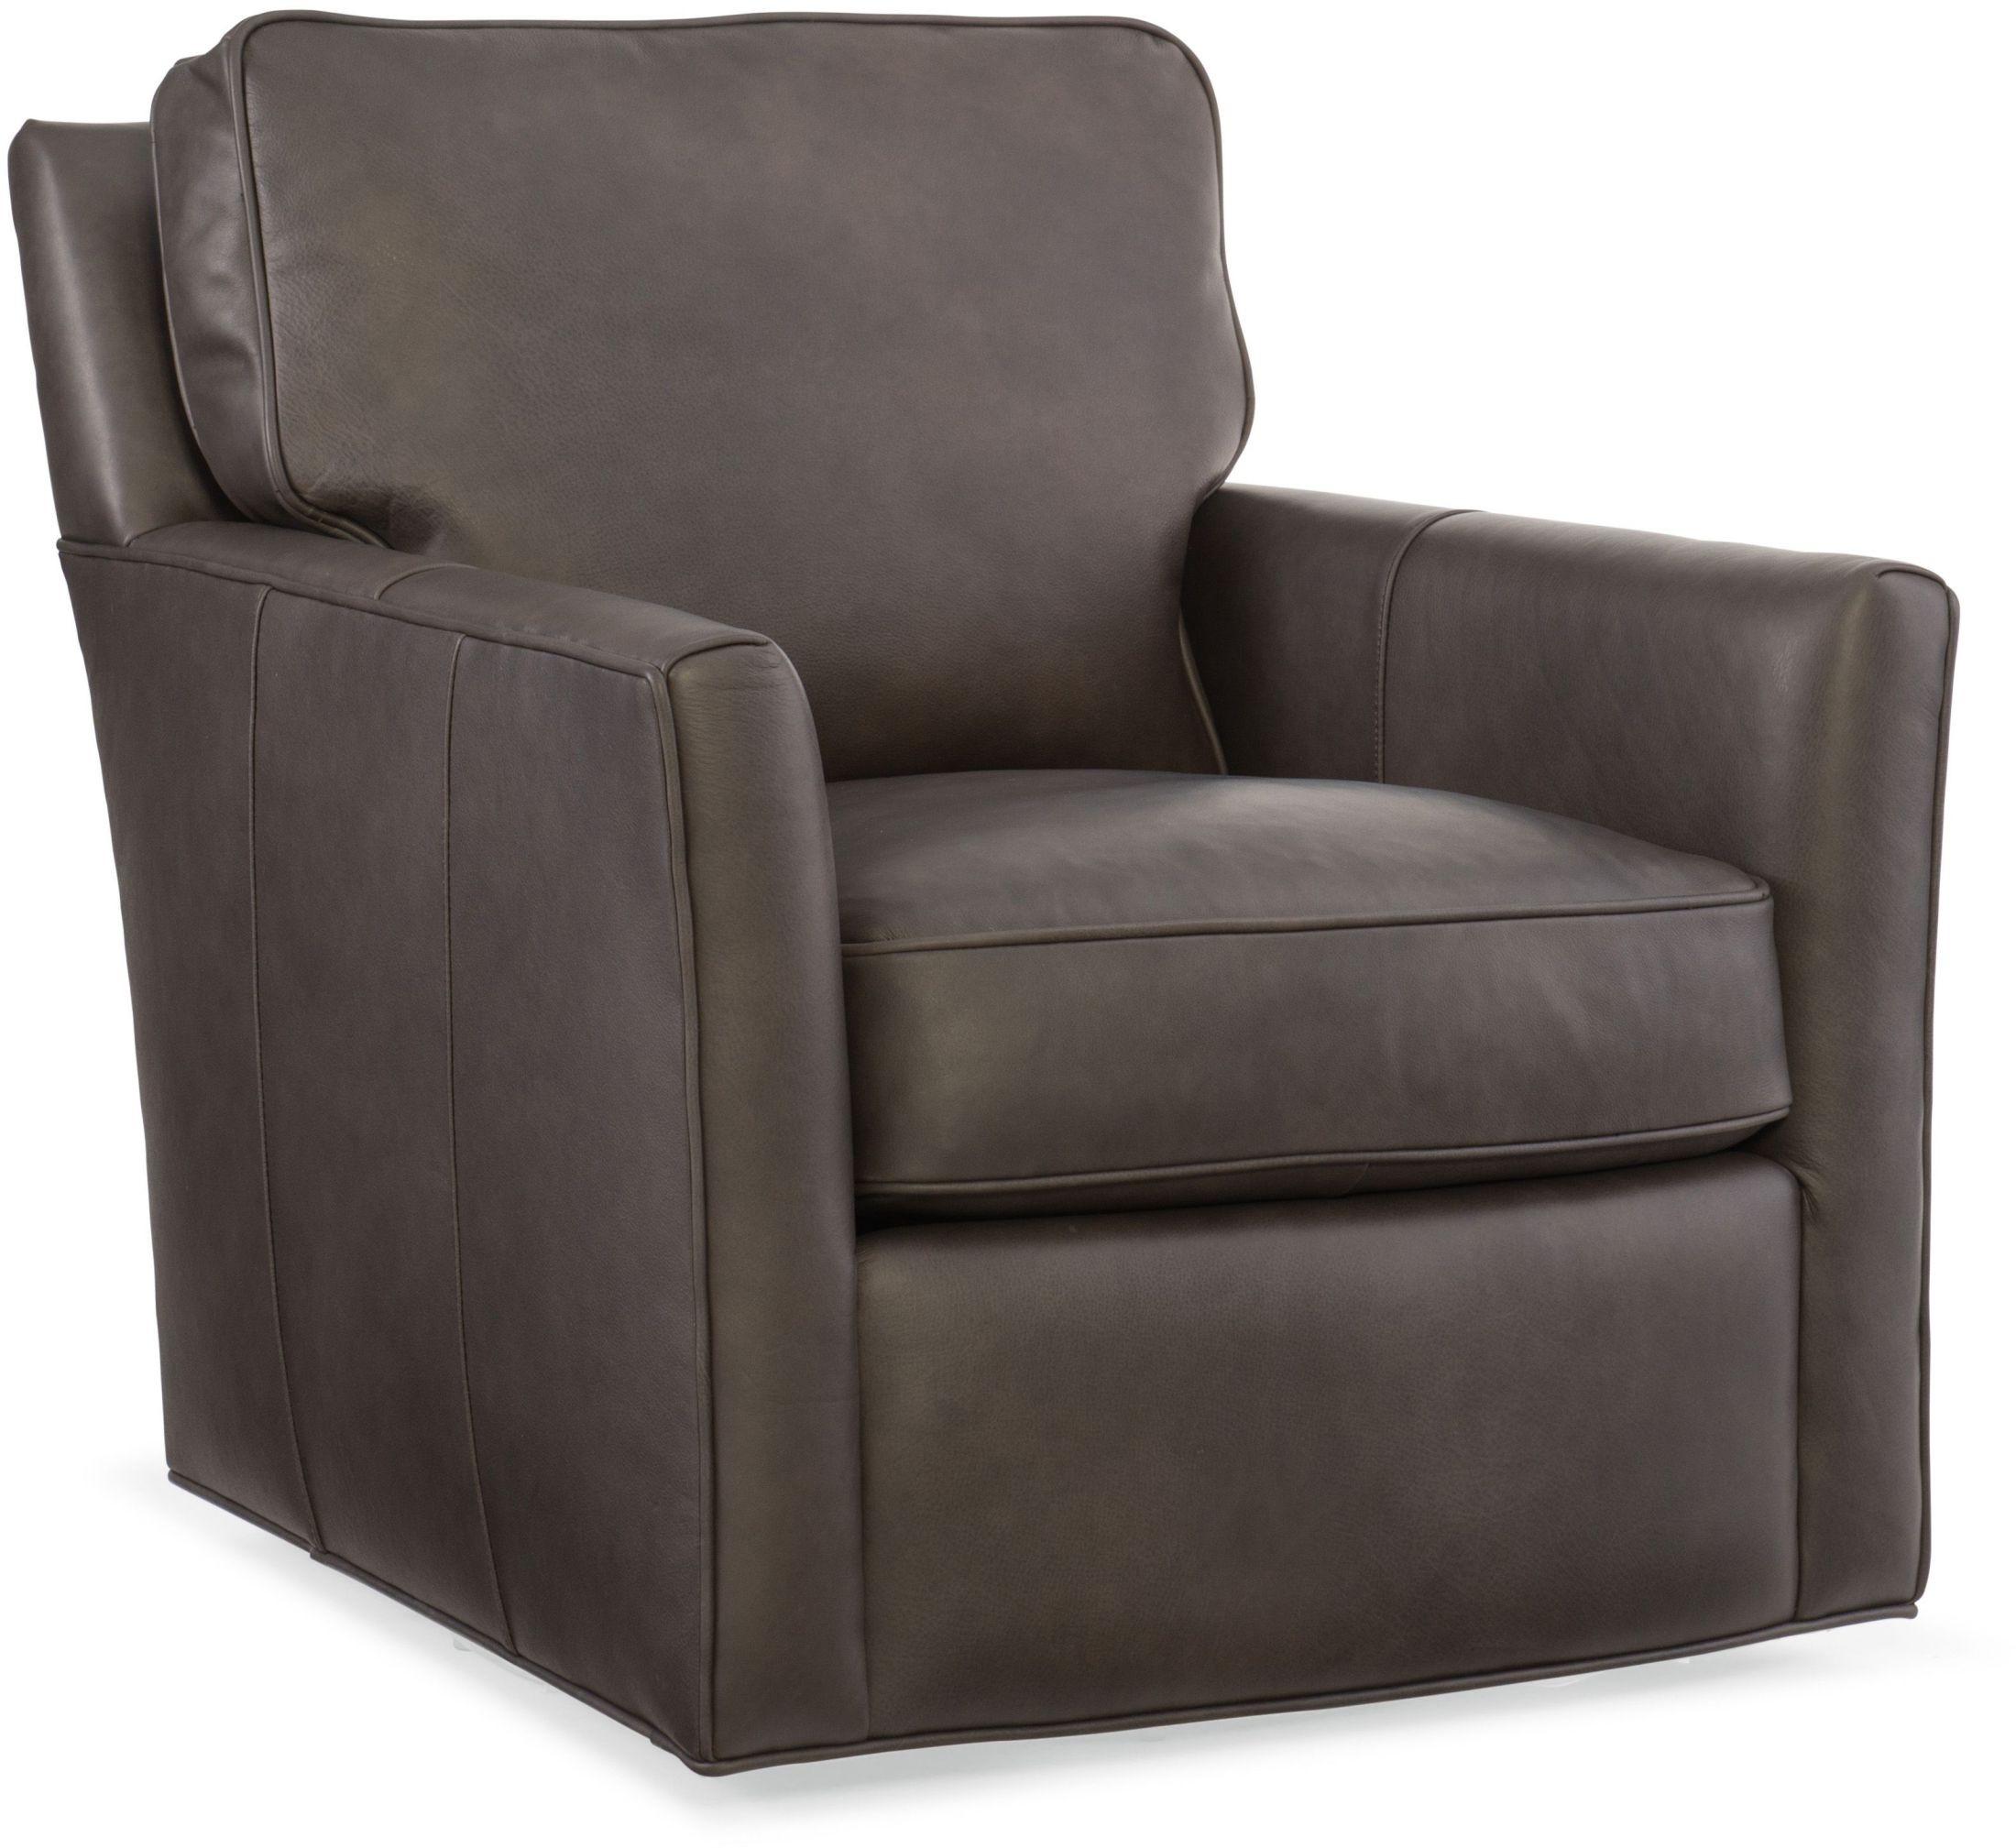 Grey Leather Club Chair Mandy Gray Swivel Leather Club Chair From Hooker Coleman